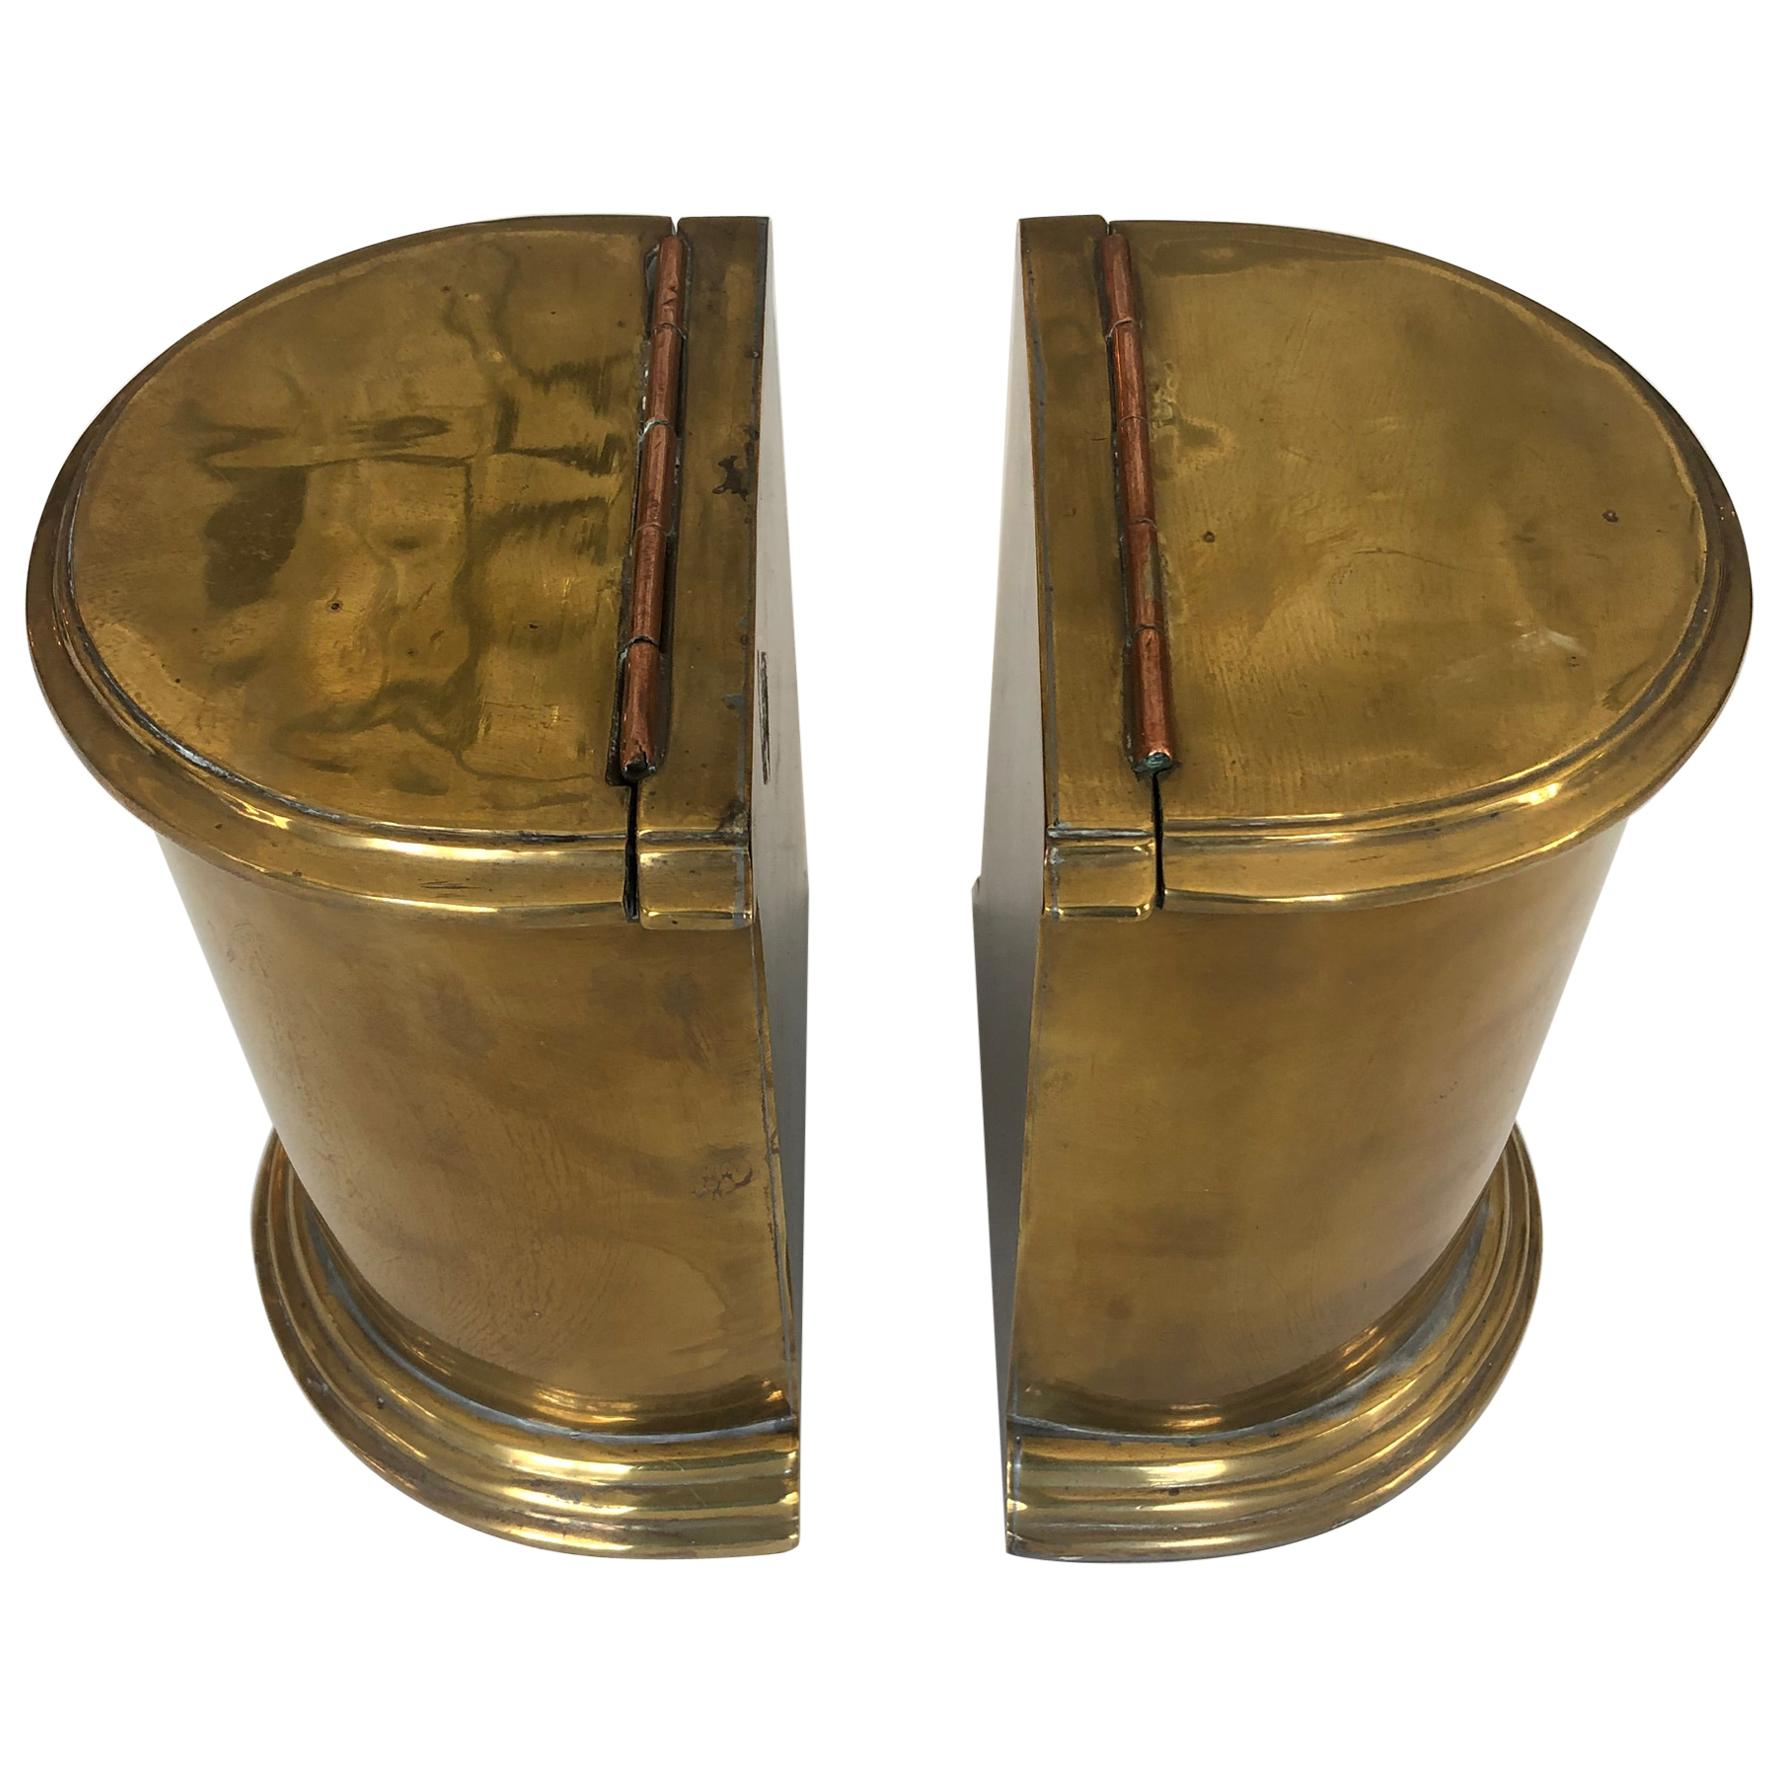 Handsome Pair of Antique English Cast Brass and Copper Bookends